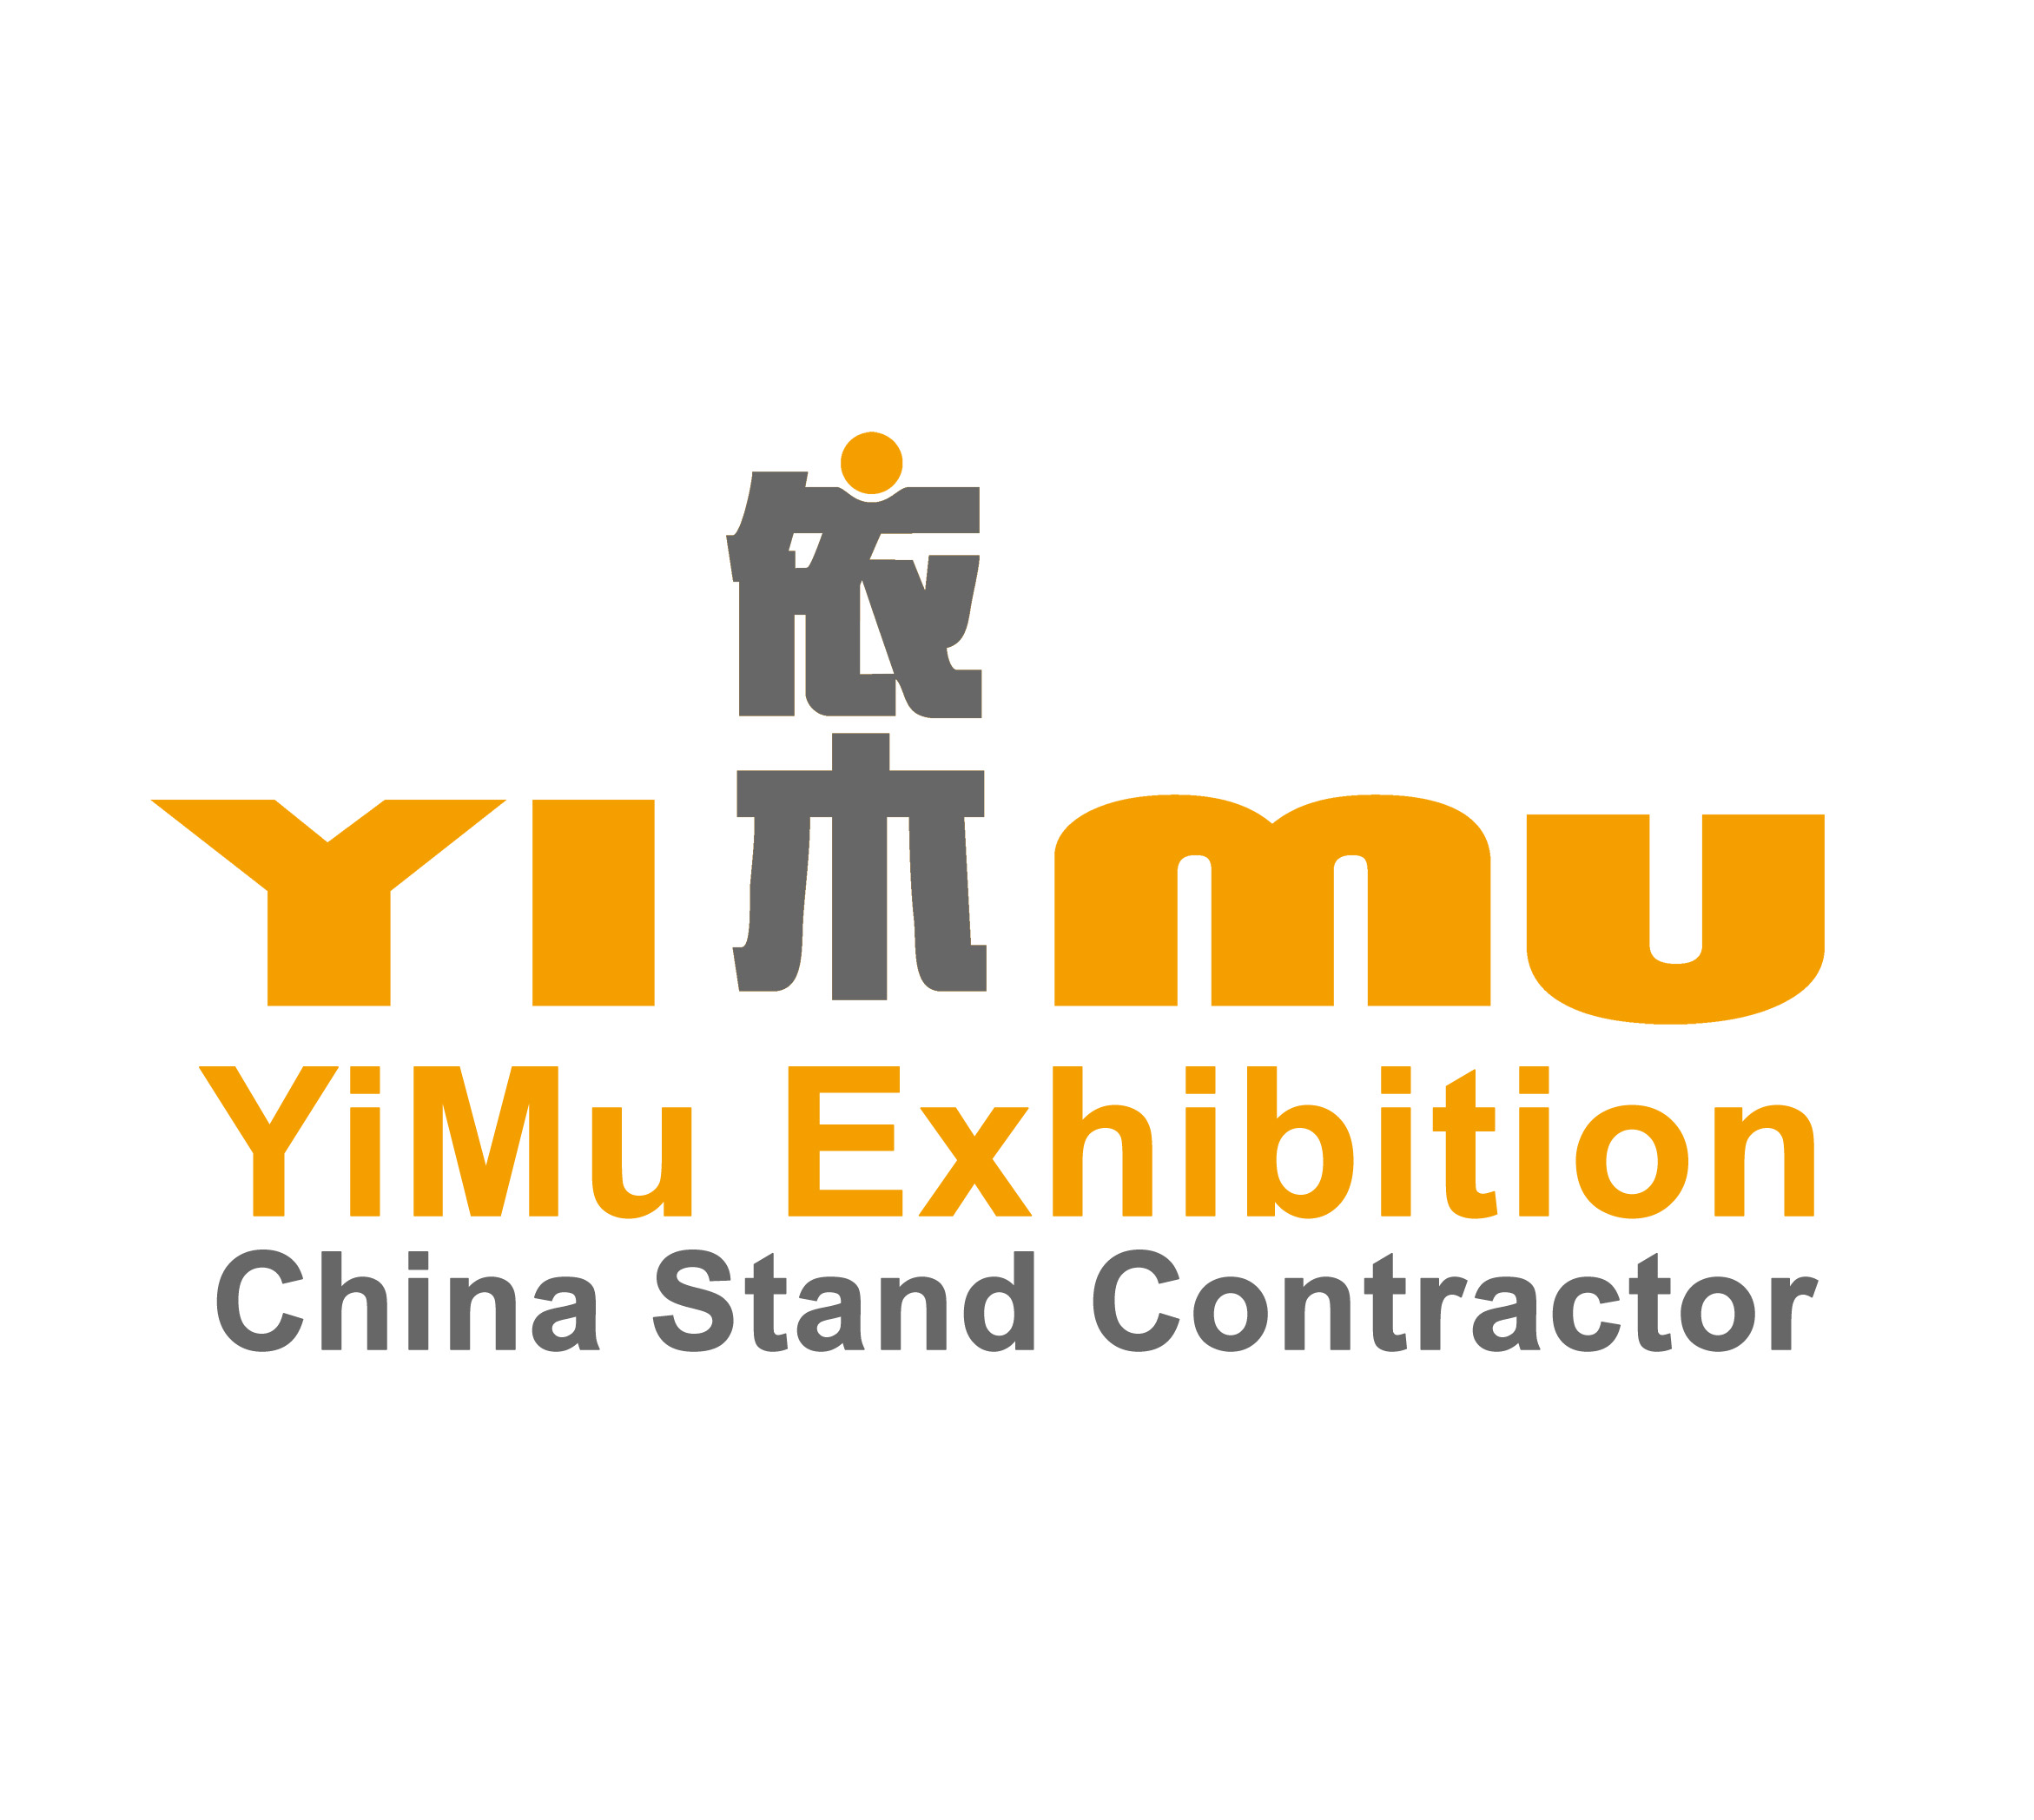 China Stand Contractor | Booth Design | Exhibition Stand Fabrication | Custom Booth construction  |  Conference&Event Management  | Hongkong exhibition contractor | stand designs | event booth fabrication | exhibition display stands | Country Pavilion Construction in hongkong show | One-stop on site services.